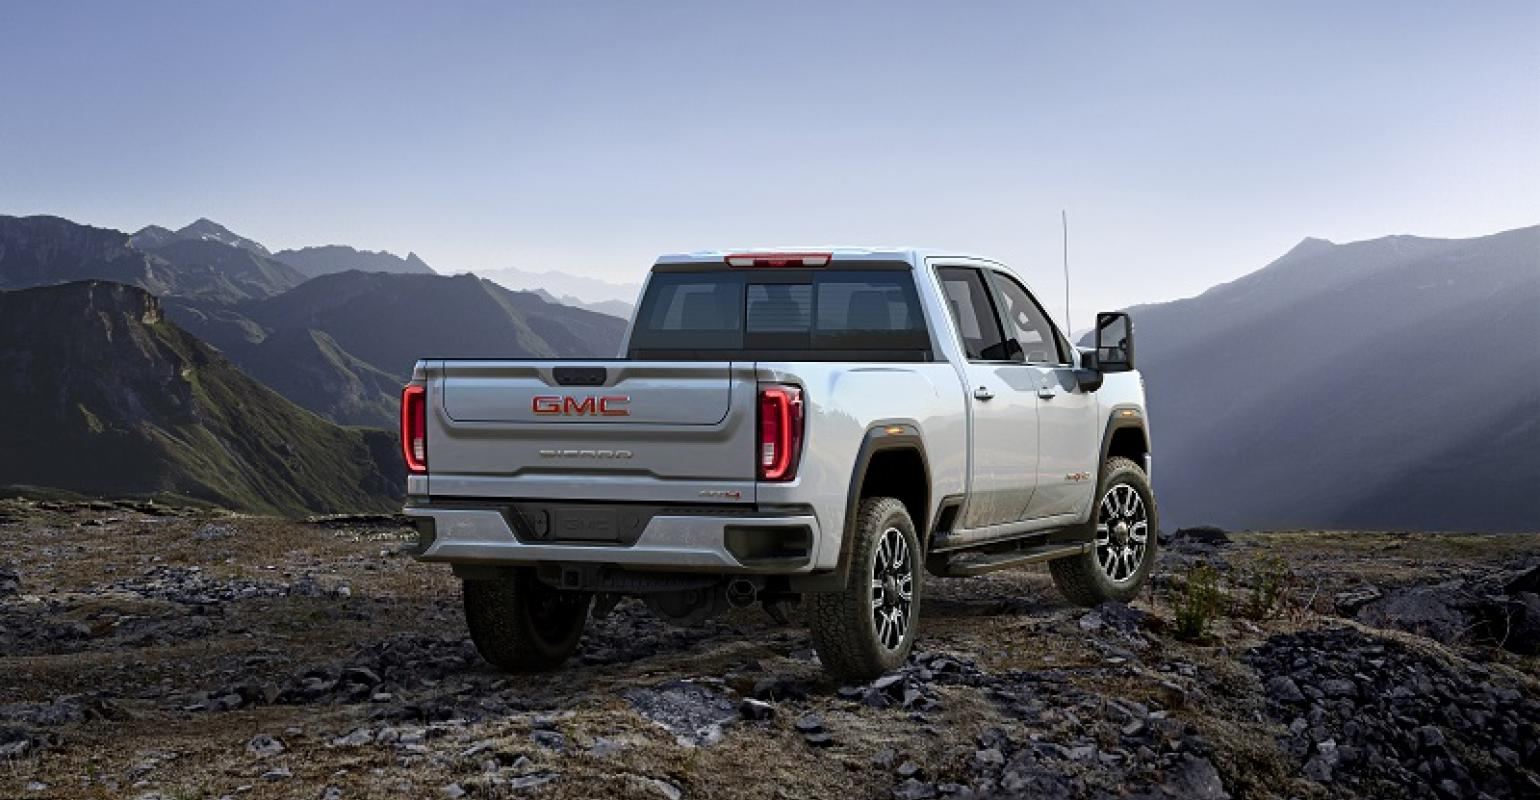 48 The Best 2020 GMC Sierra 2500Hd Specs and Review